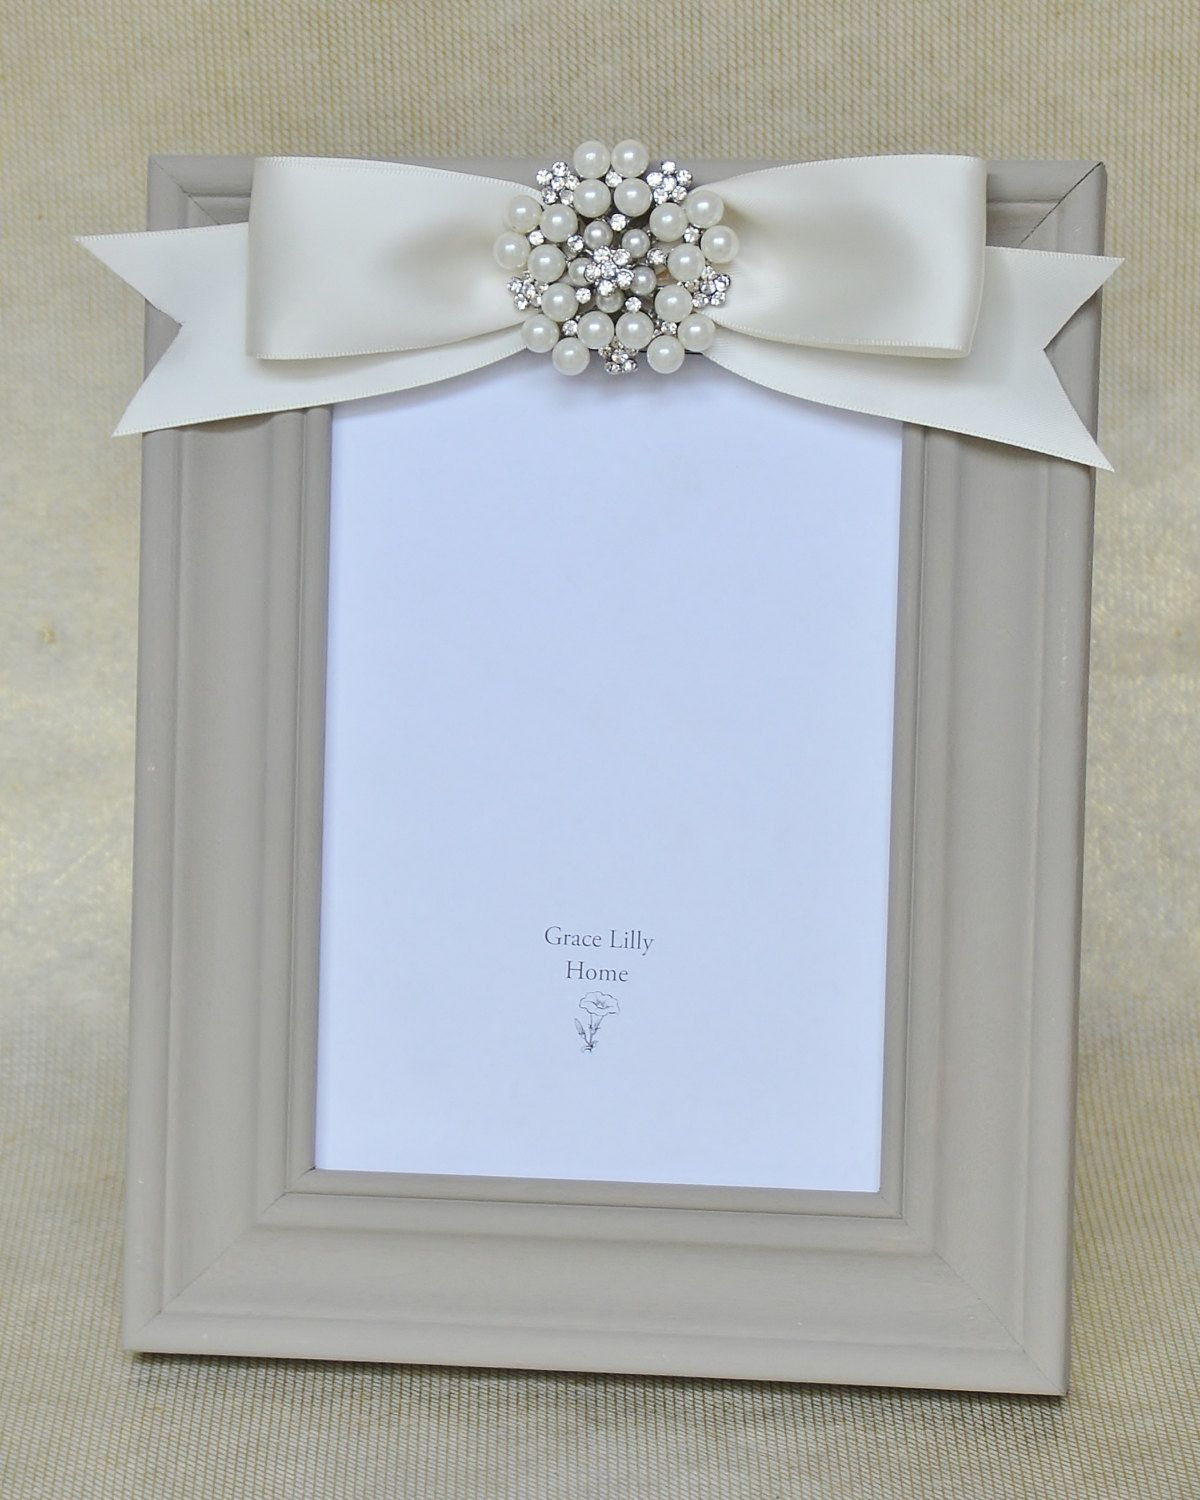 6 Crystal Pearl Photo Picture Frame Diamond Bowknot: Embellished Picture Frame With Bow